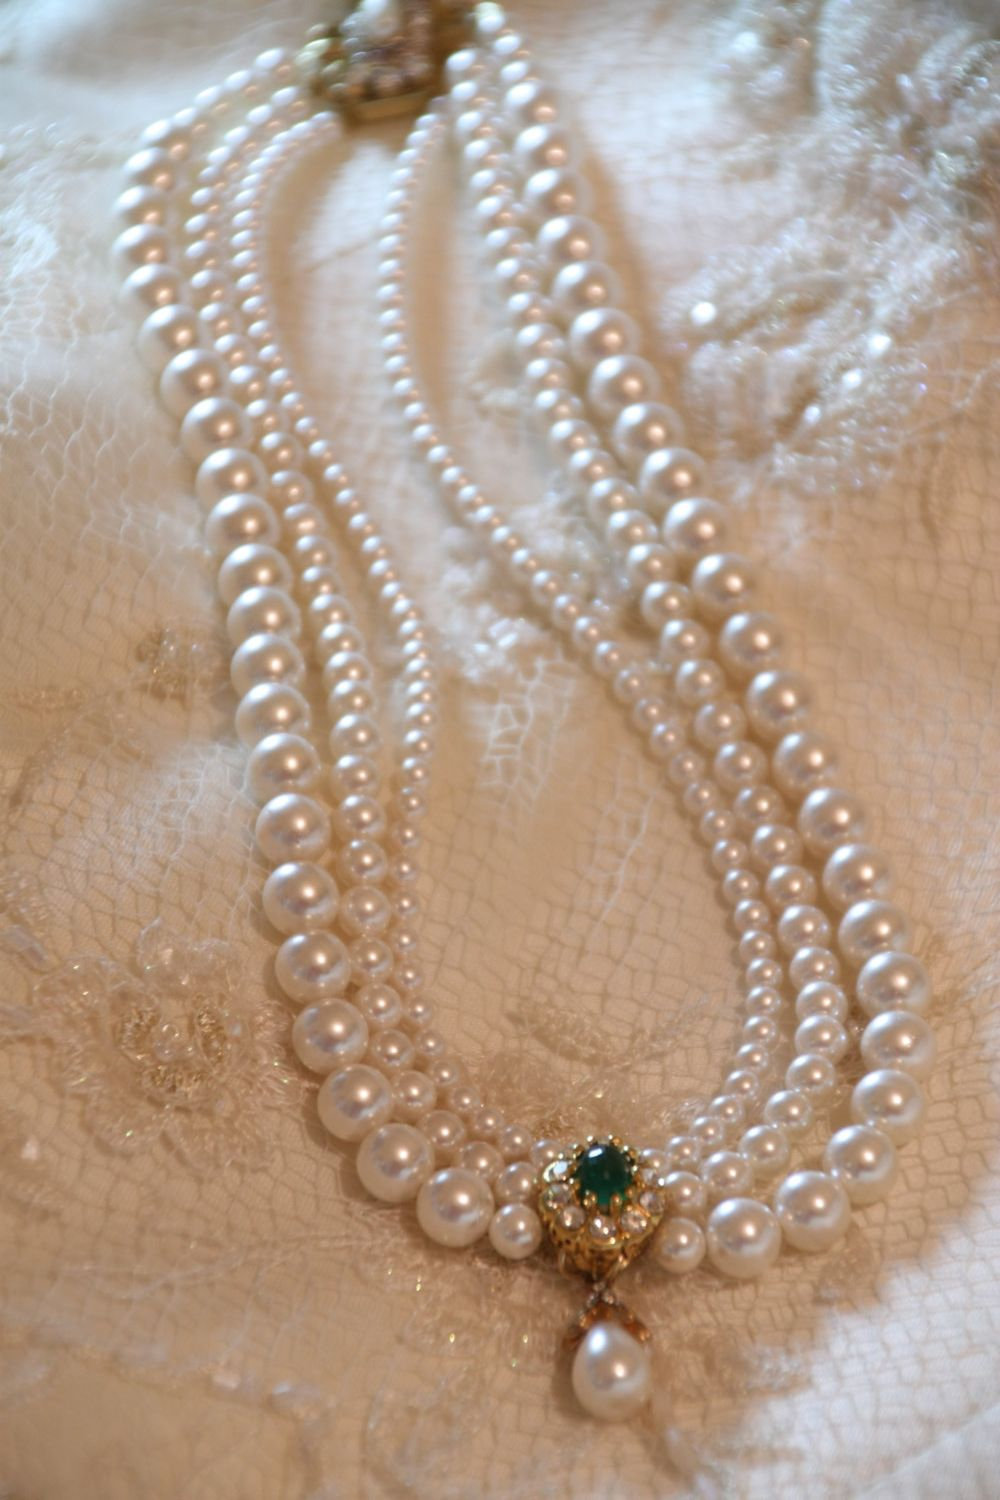 Wedding Pearls Necklace Real Stone Emerald Bridal Green Gem Etsy In 2020 Pearl Necklace Designs Pearl Jewelry Design Gold Bridal Necklace